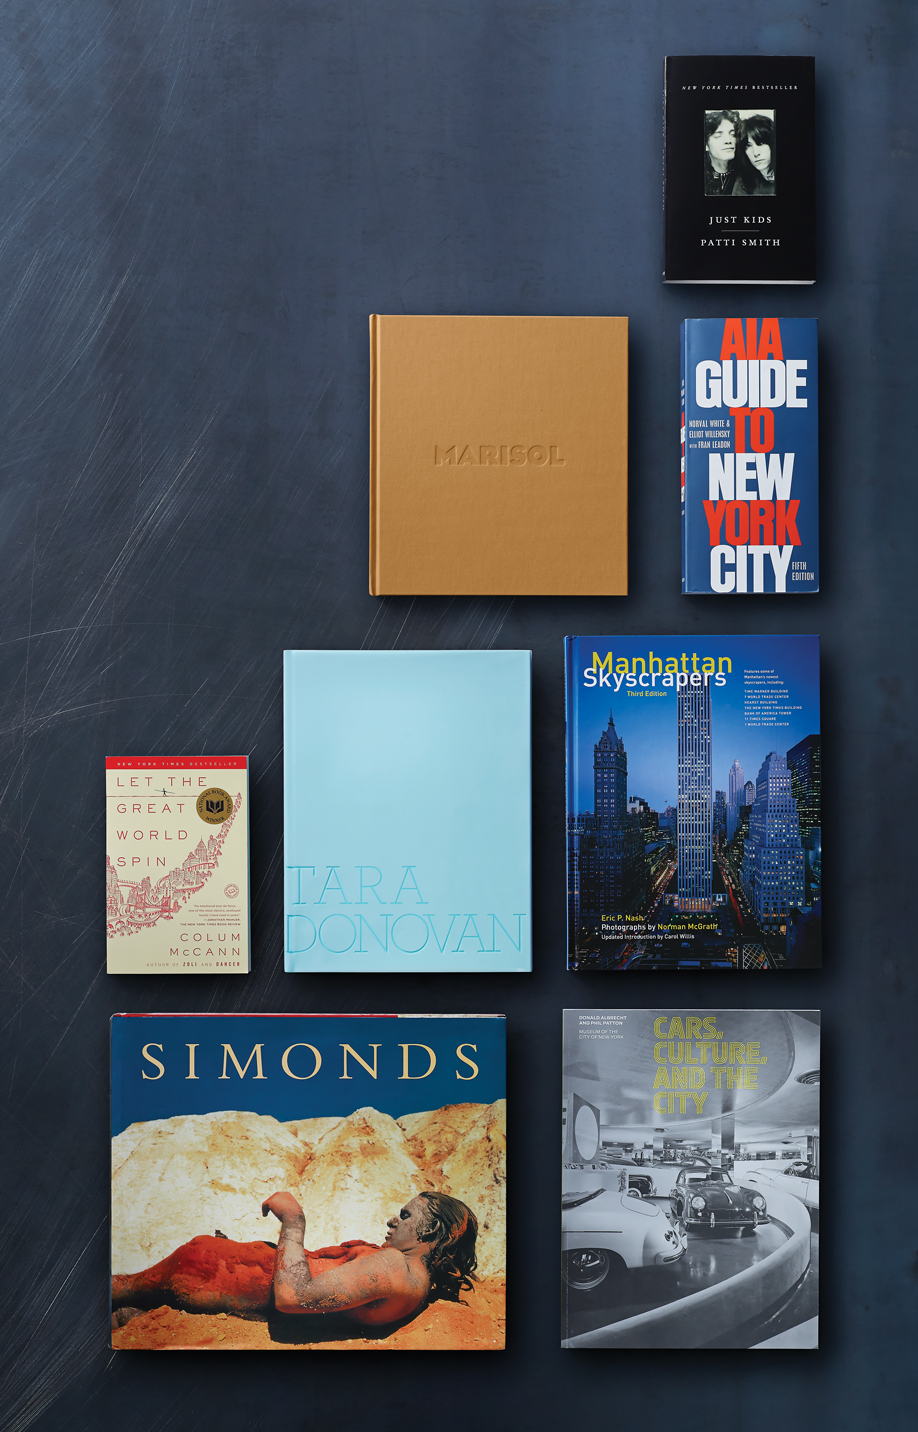 Modern books about New York